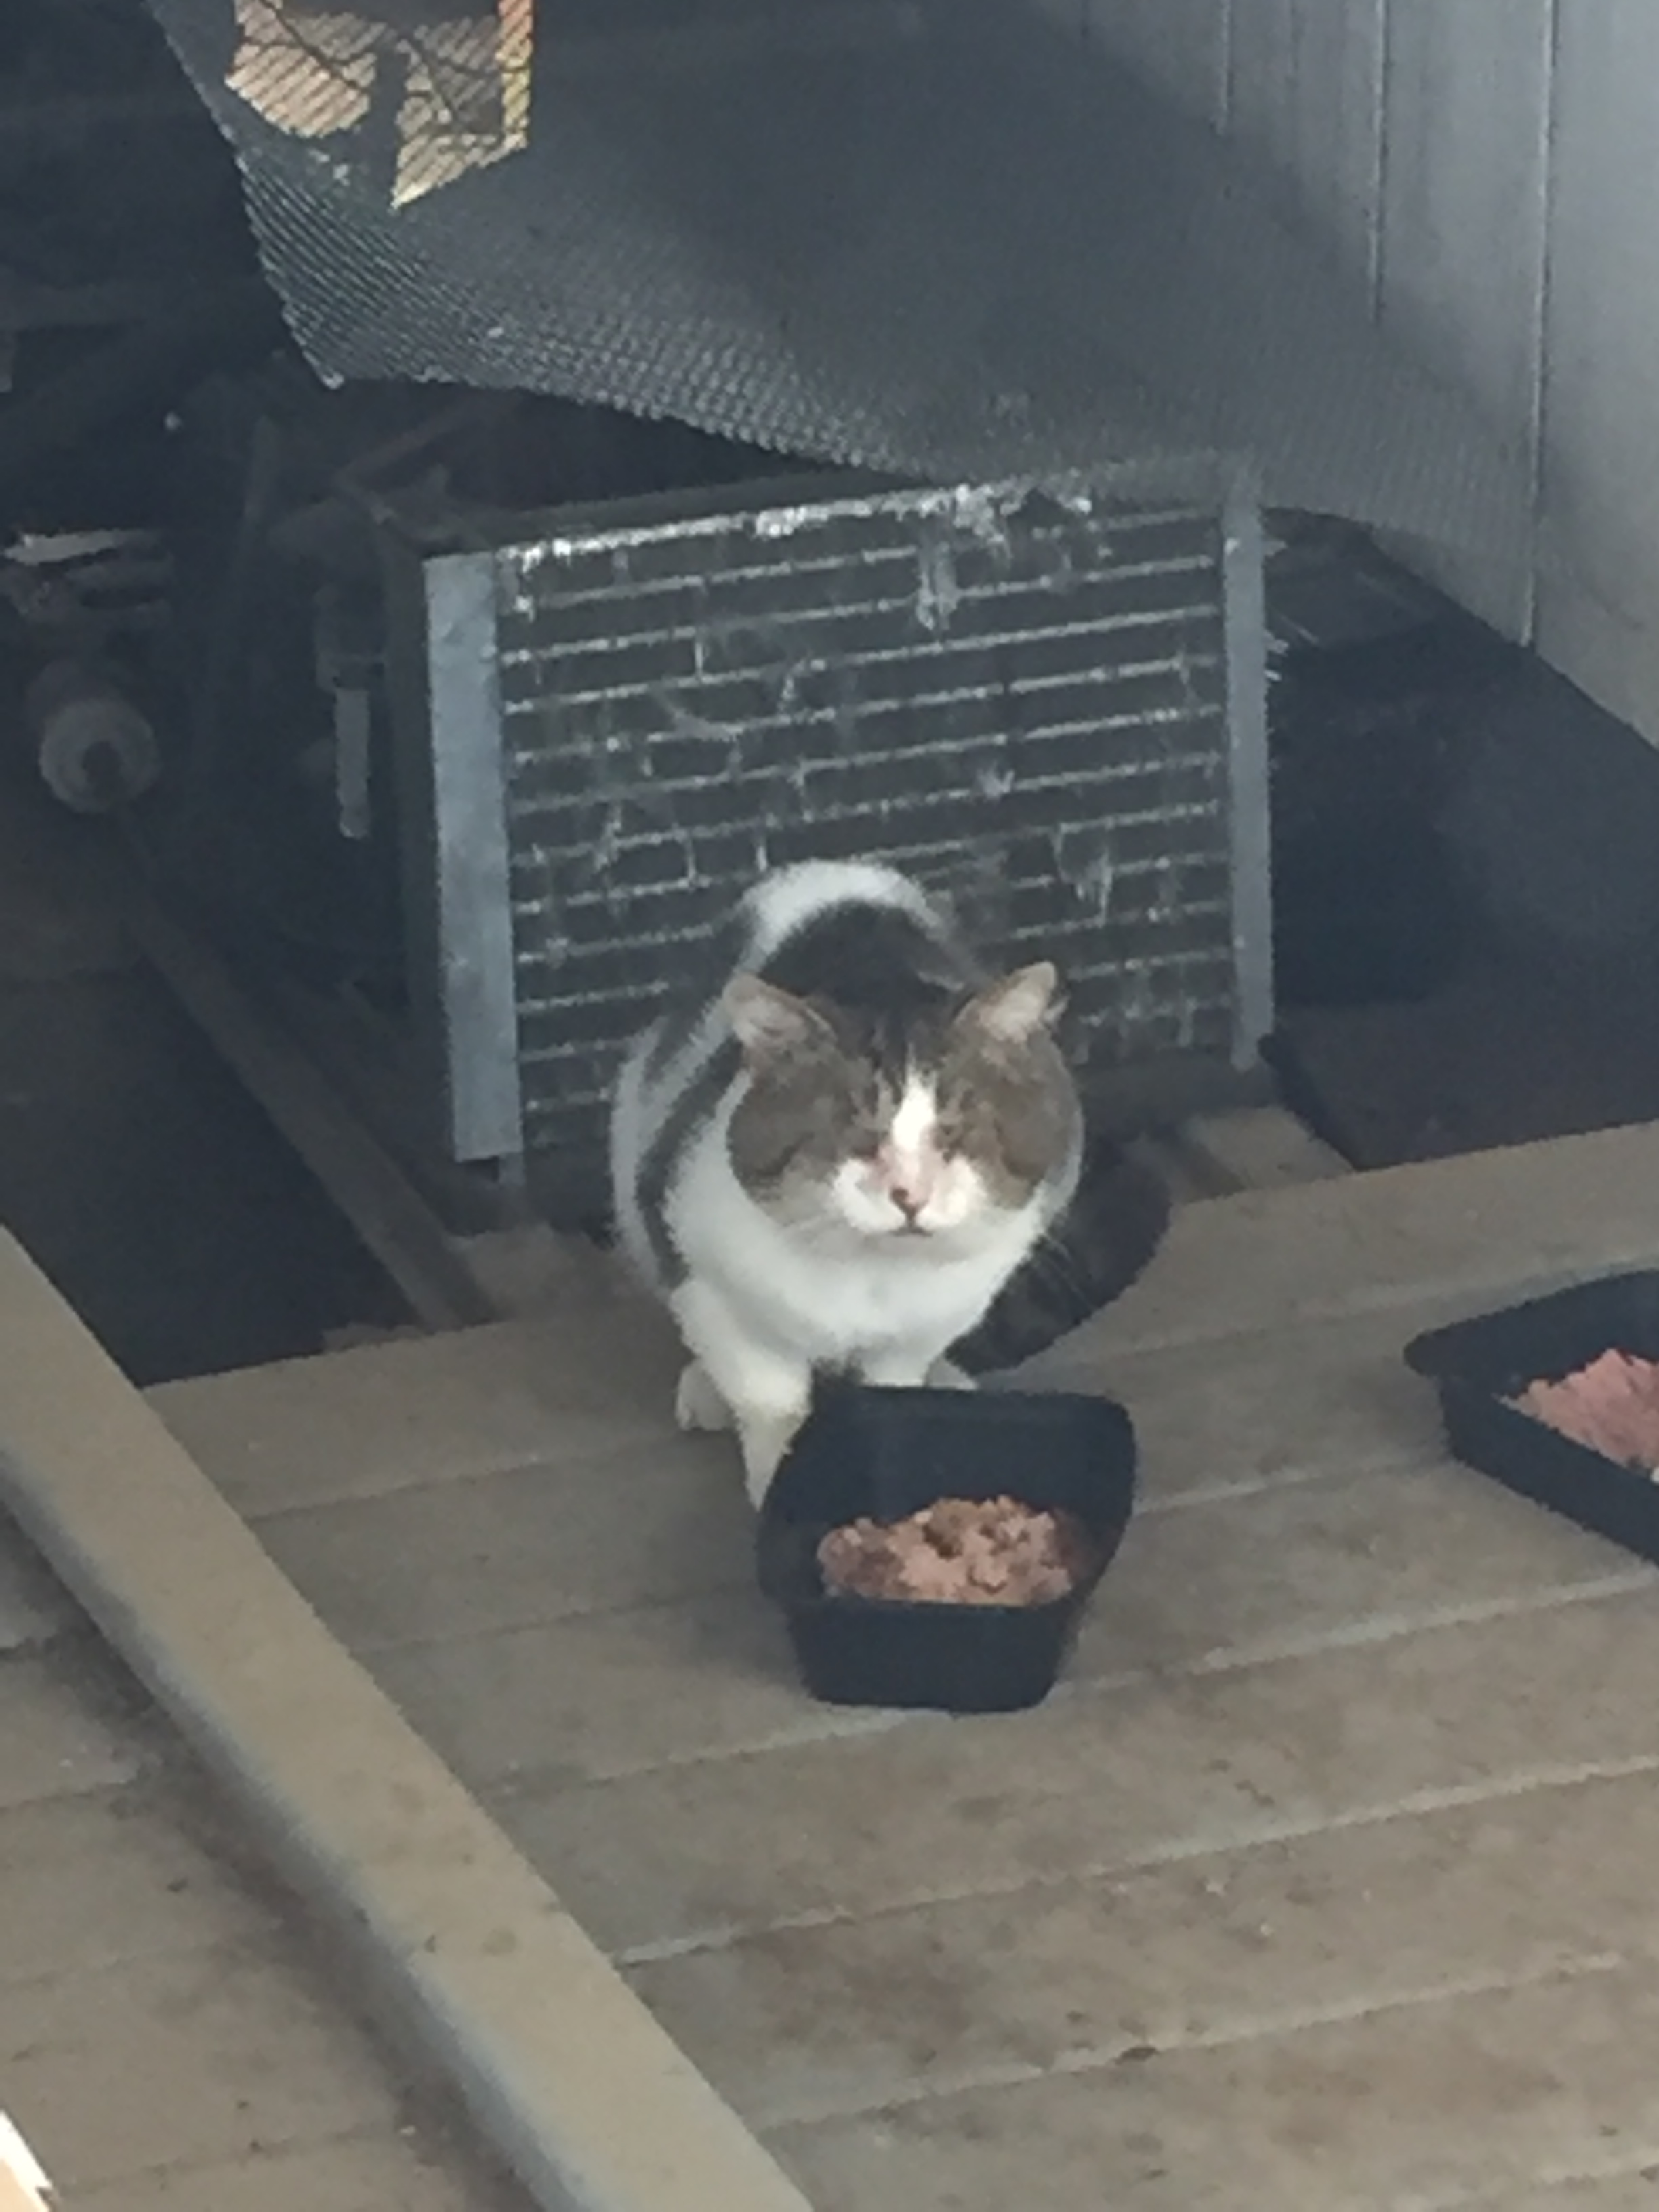 Greg the cat sitting in front of food dish.